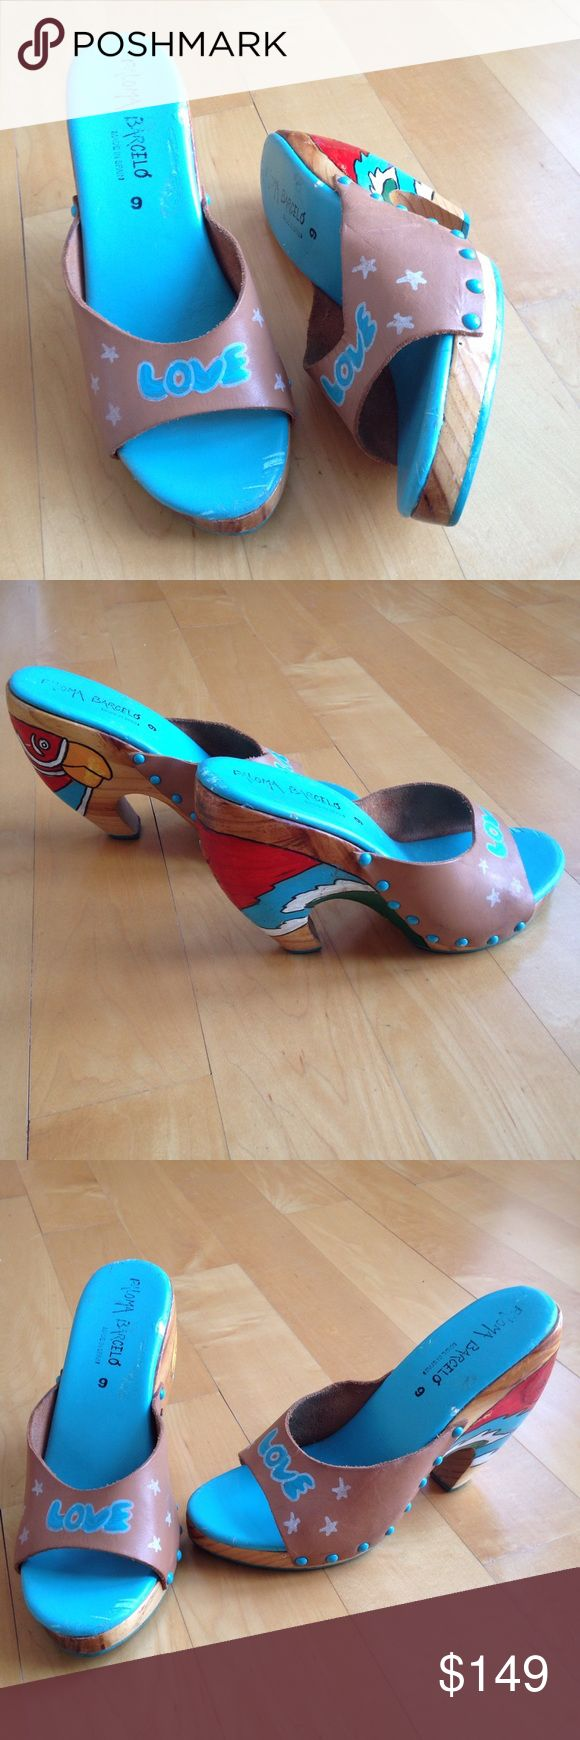 """Vintage Hand Painted Paloma Barcelo Wedges Made in Spain by high end designer Paloma Barcelo, they feature leather uppers that have been hand painted with white stars and the word """"LOVE"""", and the sole? They're genuine wood and have hand painted parrot heads. Great for Tiki Oasis, Hukilau, and any parrothead convention. Size is 9, but they run a tad small. I'm thinkin' they're best on an 8 or 8.5. They measure about 9-3/4"""" along the curve of the insole. And they're a whopping almost 5"""" high…"""